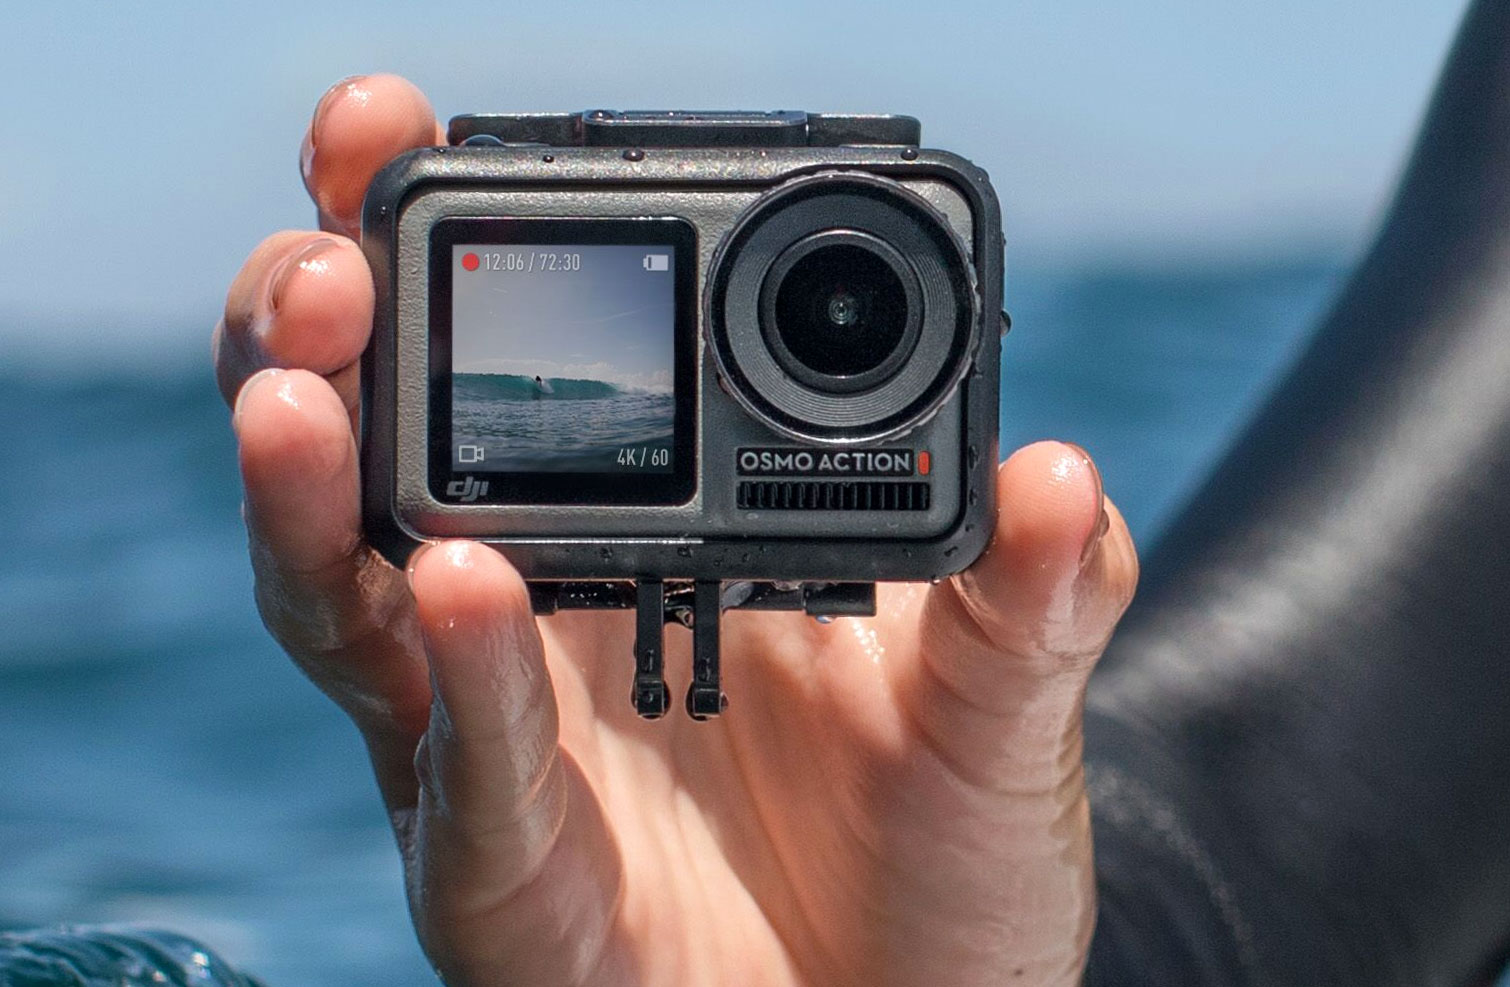 DJI unveils its first action camera to take on GoPro